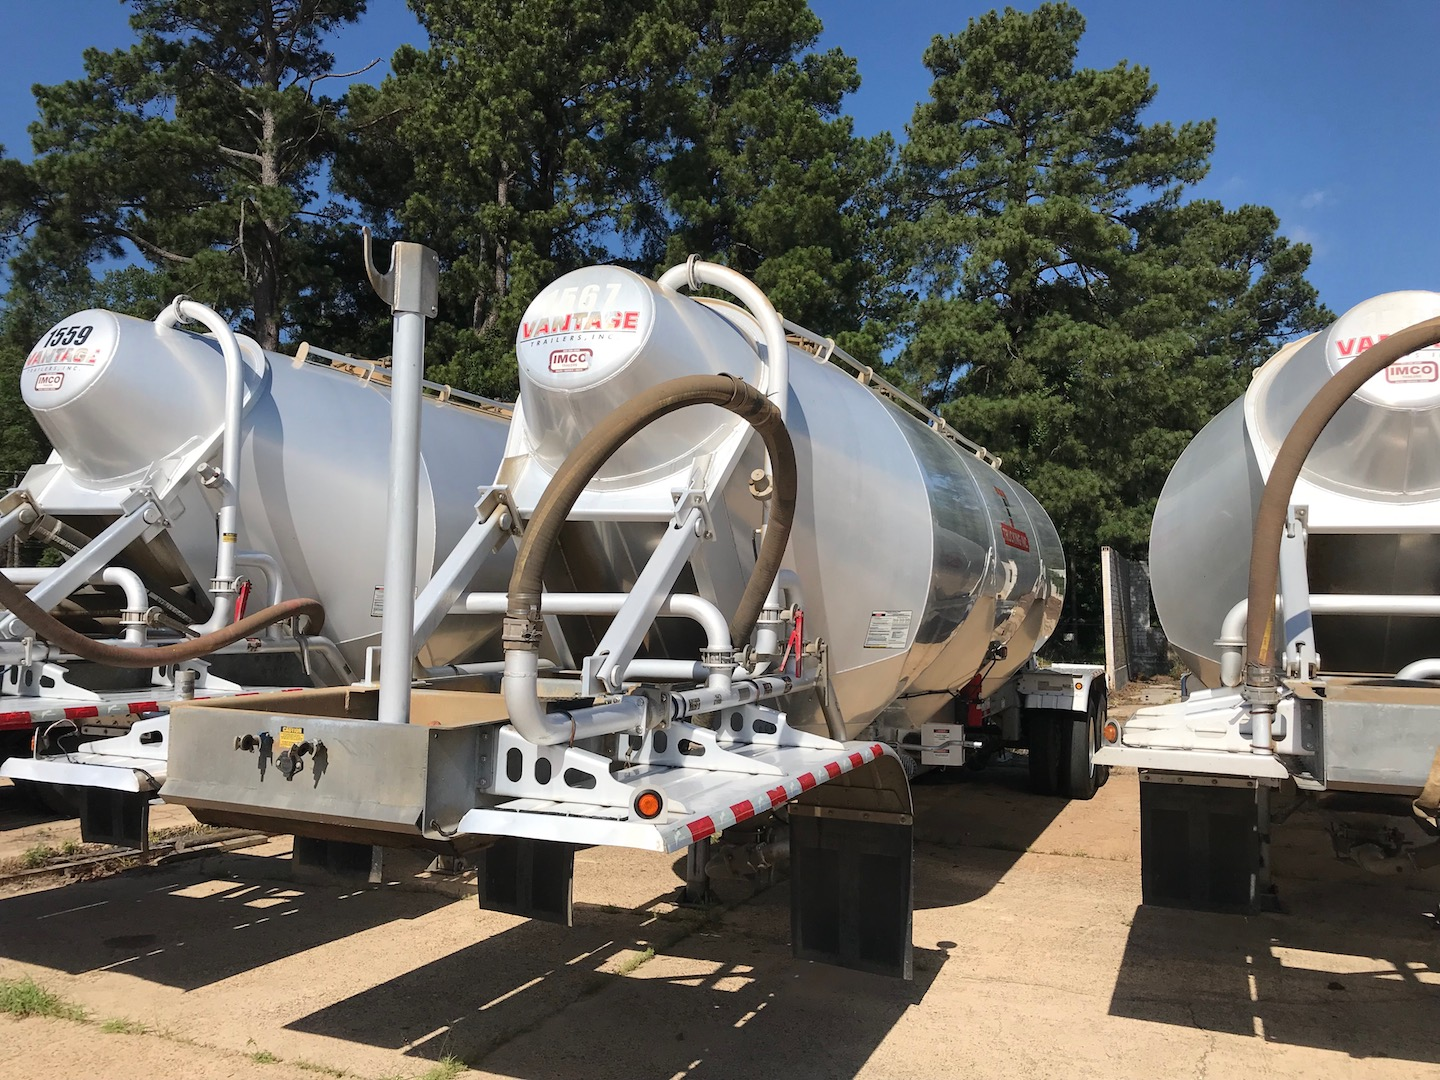 2015 Vantage 1000 Cu Ft Pneumatic Trailer